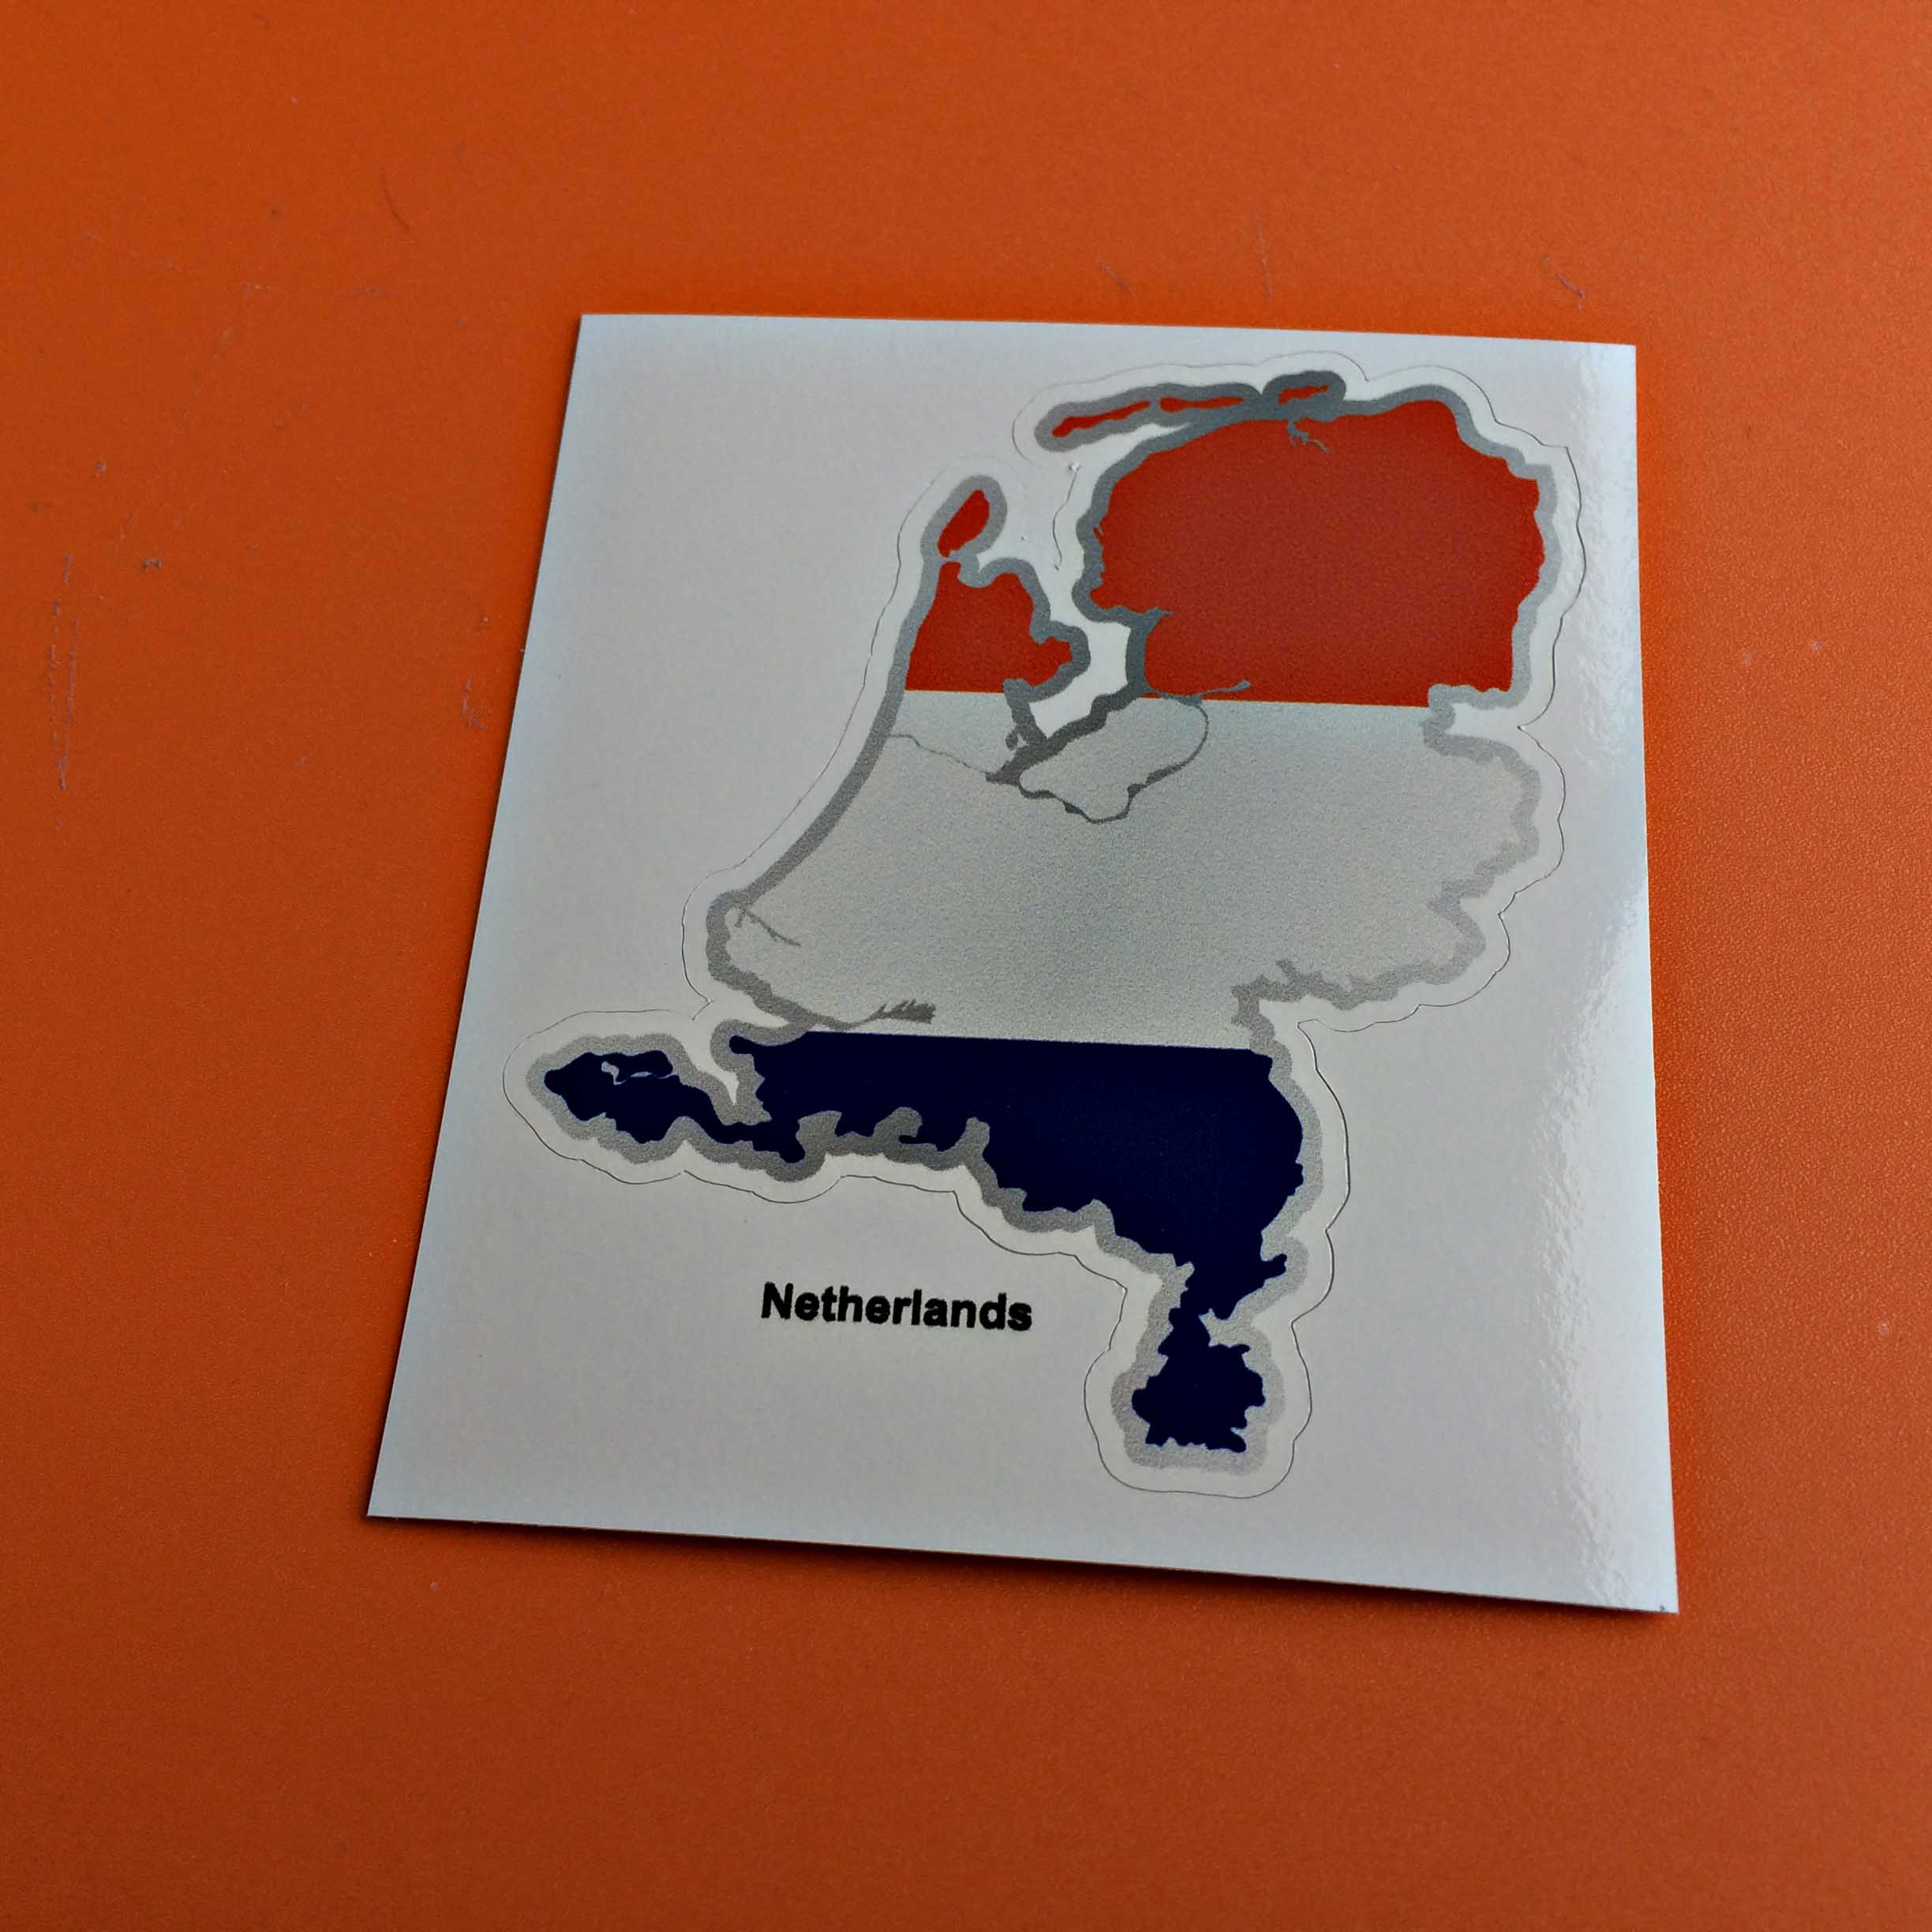 Netherlands flag and map with Netherlands in black lettering below. Flag is a horizontal tricolour of red, white and blue.